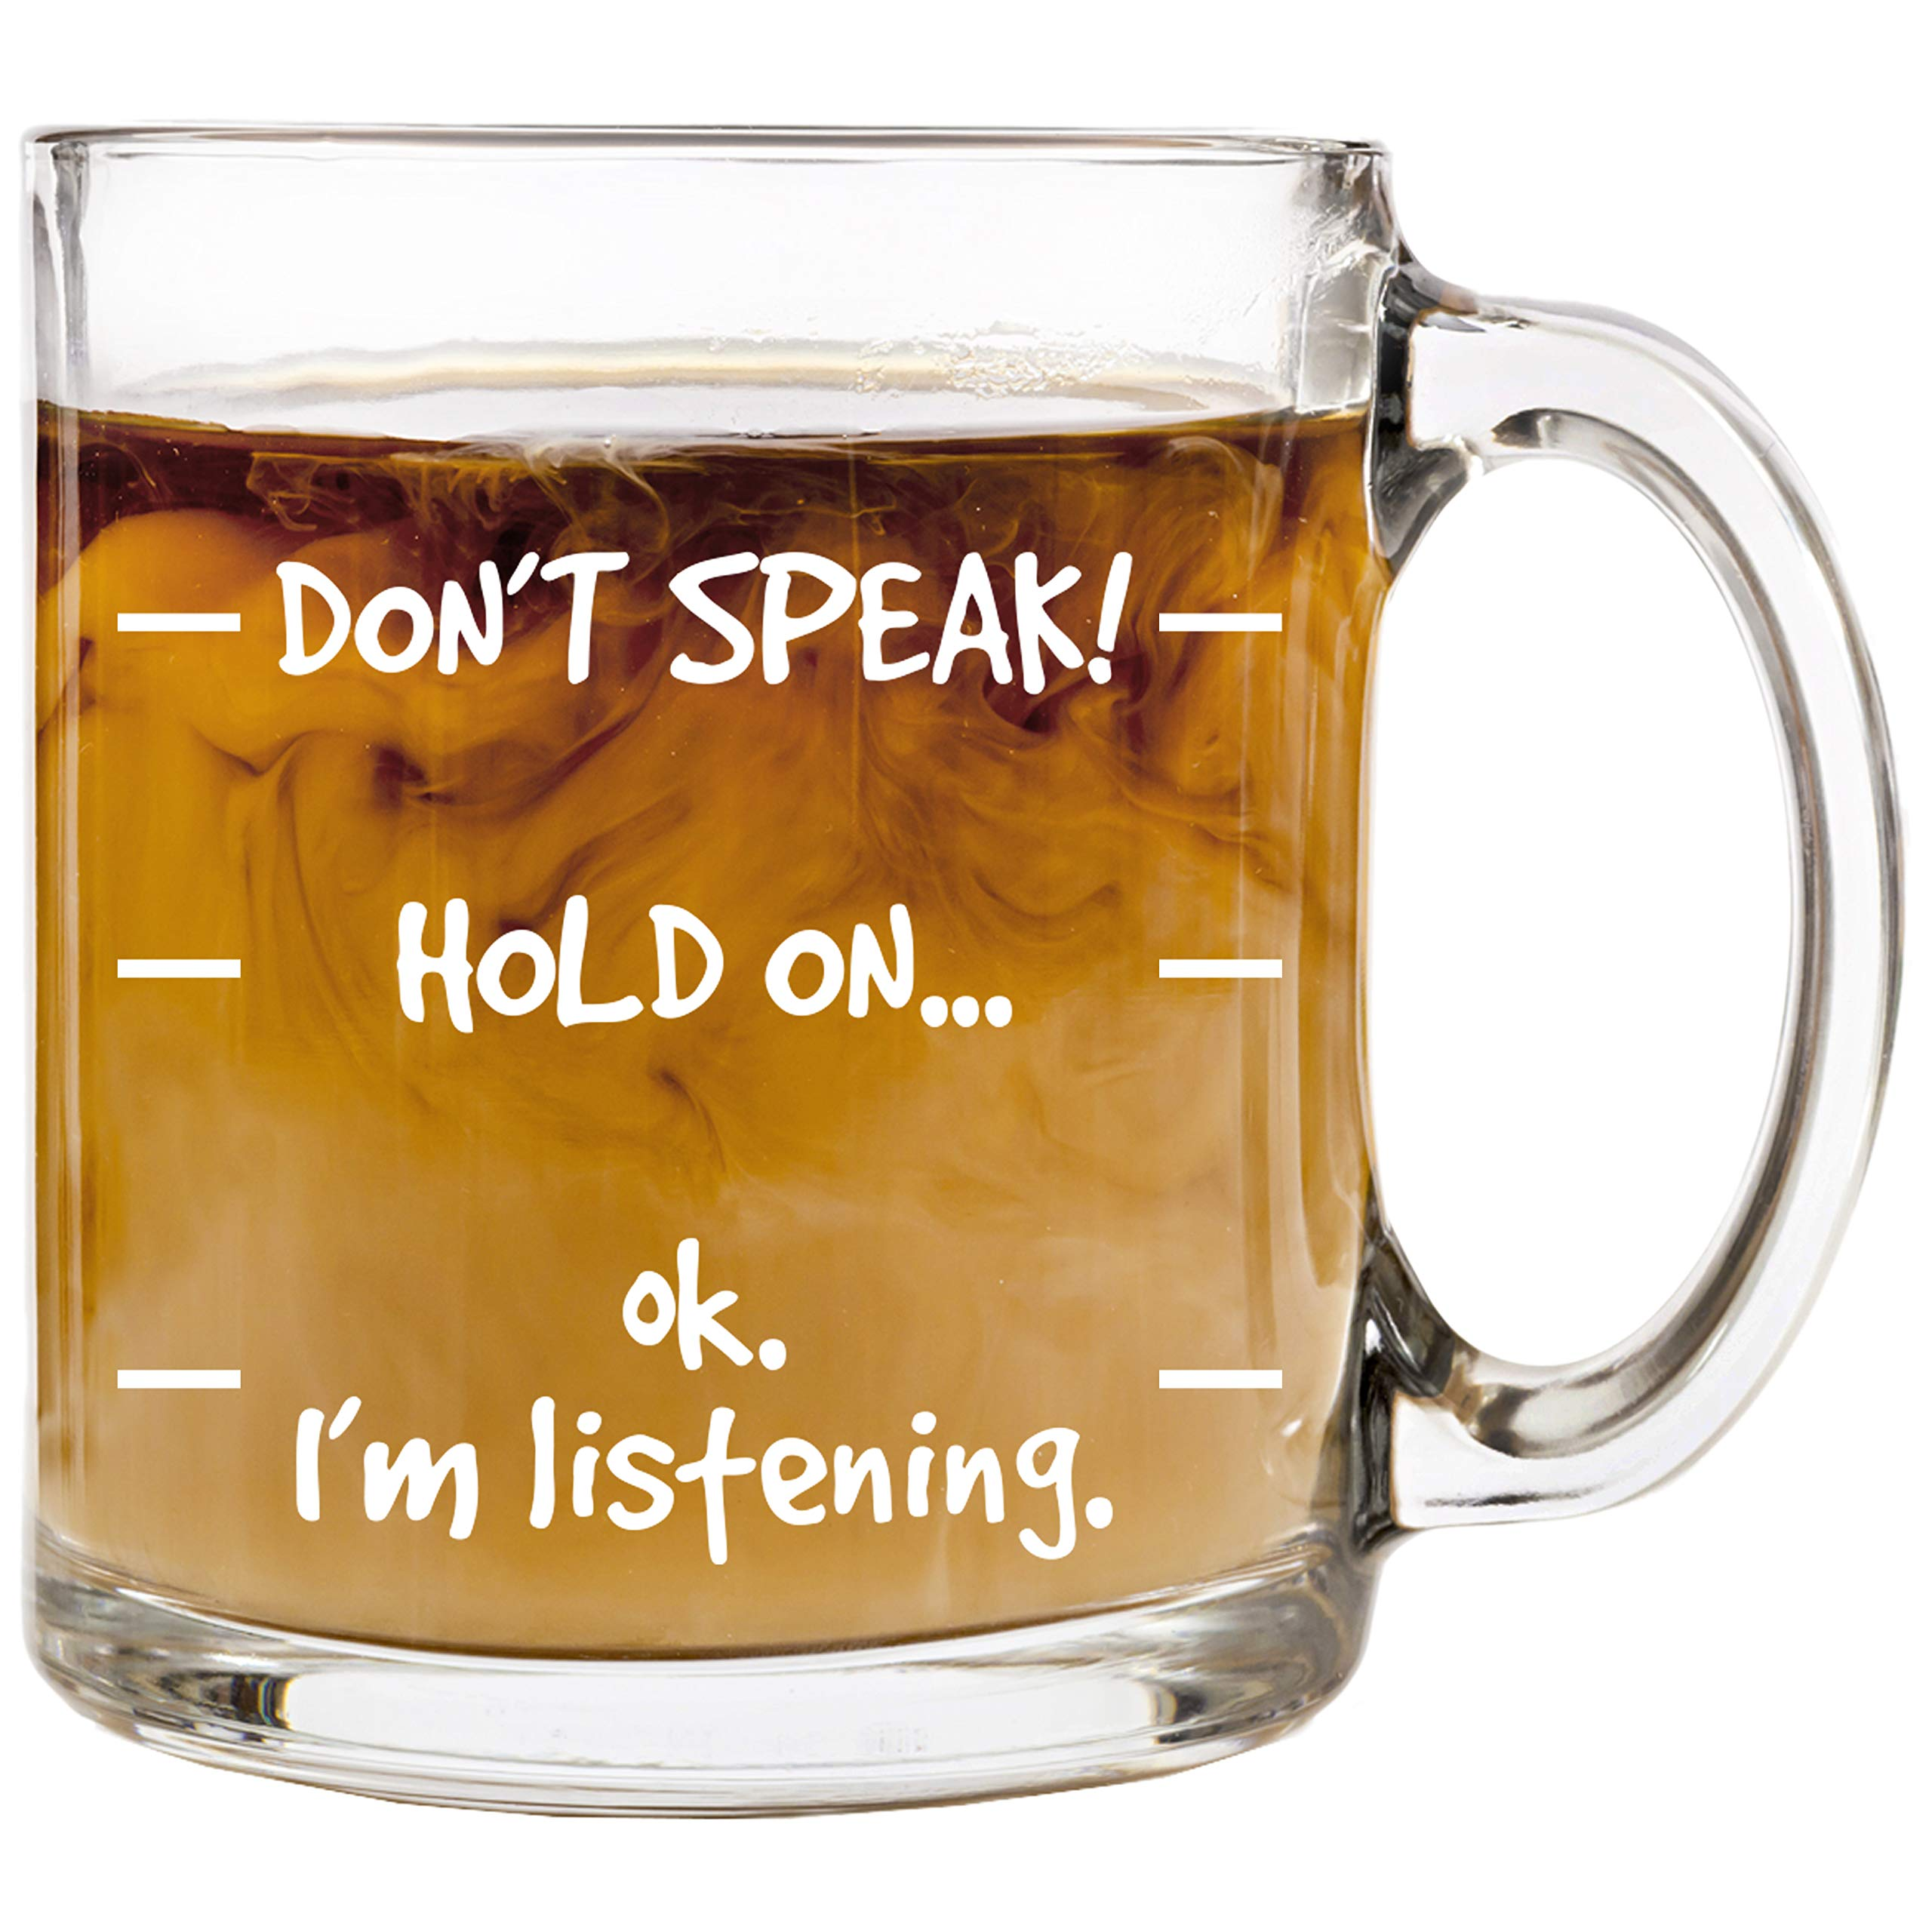 Don't Speak! Funny Coffee Mug - 13 oz Glass - Cool Novelty Birthday Gift for Men, Women, Husband or Wife - Christmas Present Idea Mom or Dad from Son or Daughter with Humorous Sayings Cup by HUHG - wiihuu